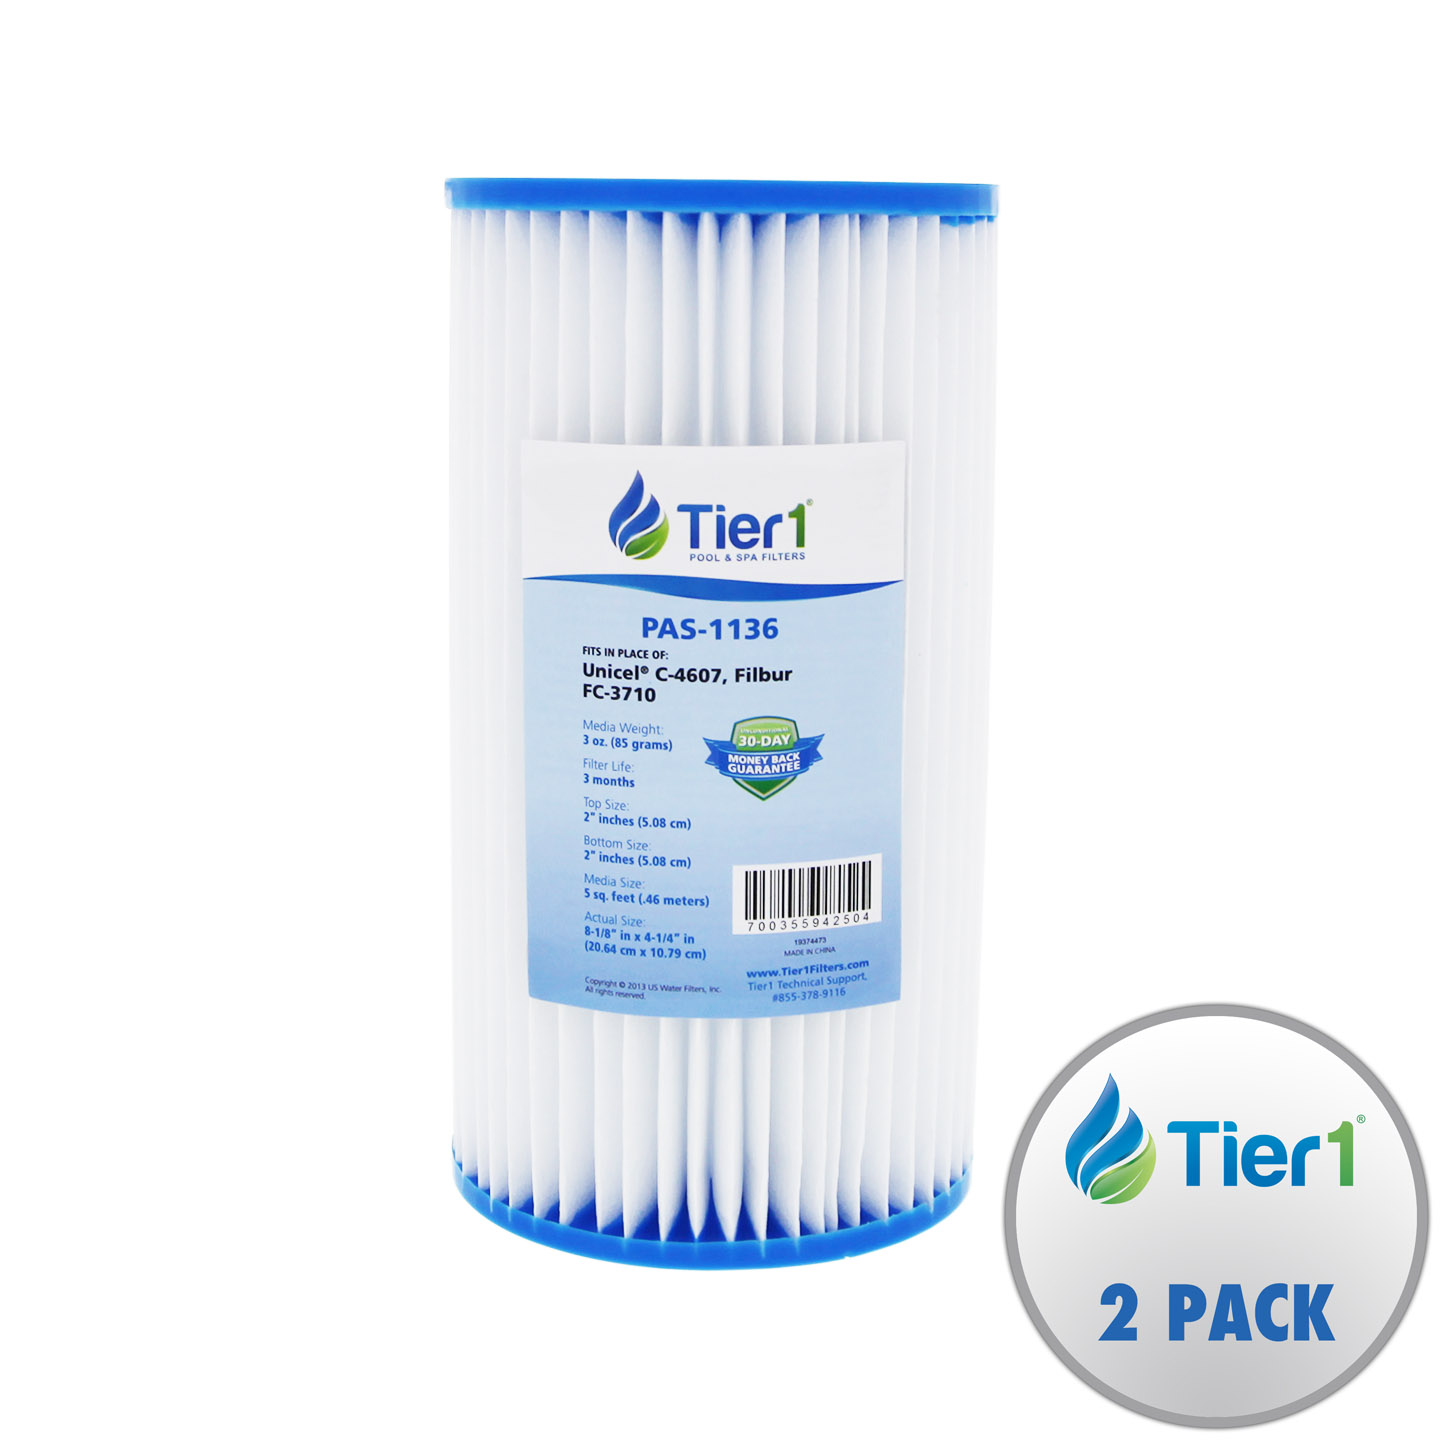 Tier1 Coleco F-120 w/core Comparable Replacement Pool & Spa Filter Cartridge 2 Pack